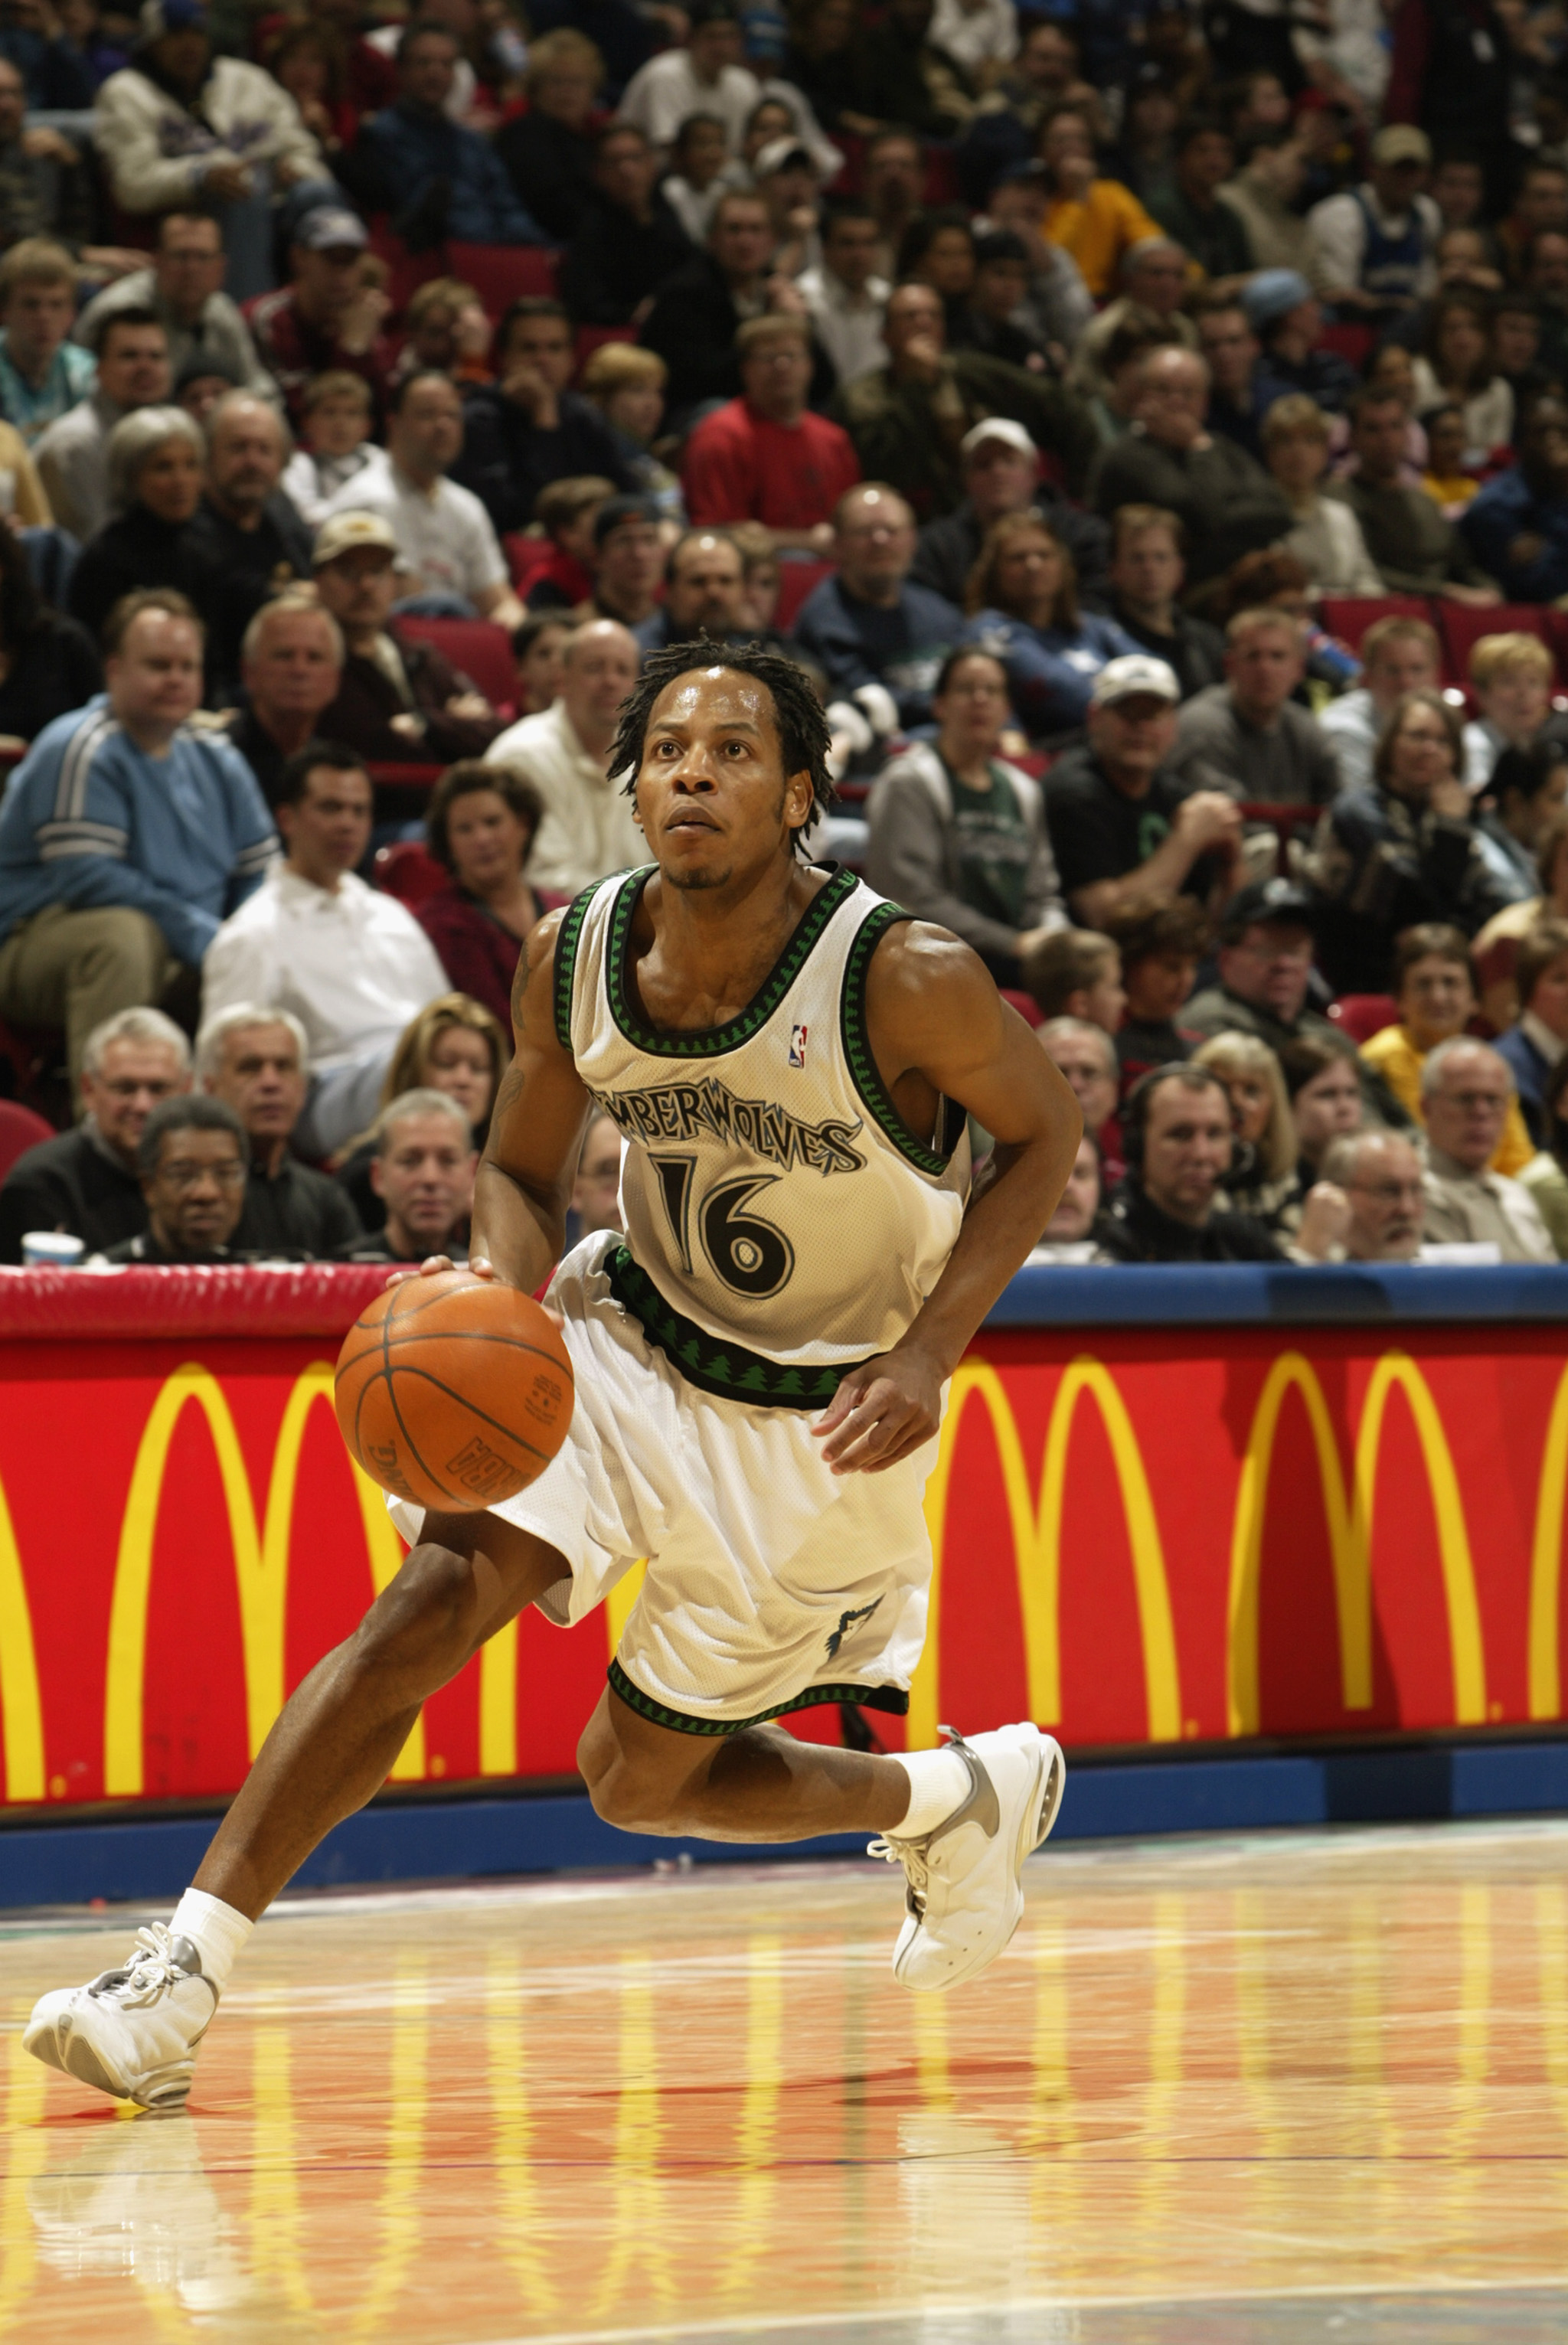 MINNEAPOLIS - MARCH 2:  Troy Hudson #16 of the Minnesota Timberwolves dribbles against the New York Knicks during the game at Target Center on March 2, 2003 in Minneapolis, Minnesota.  The Timberwolves won 99-90.  NOTE TO USER: User expressly acknowledges